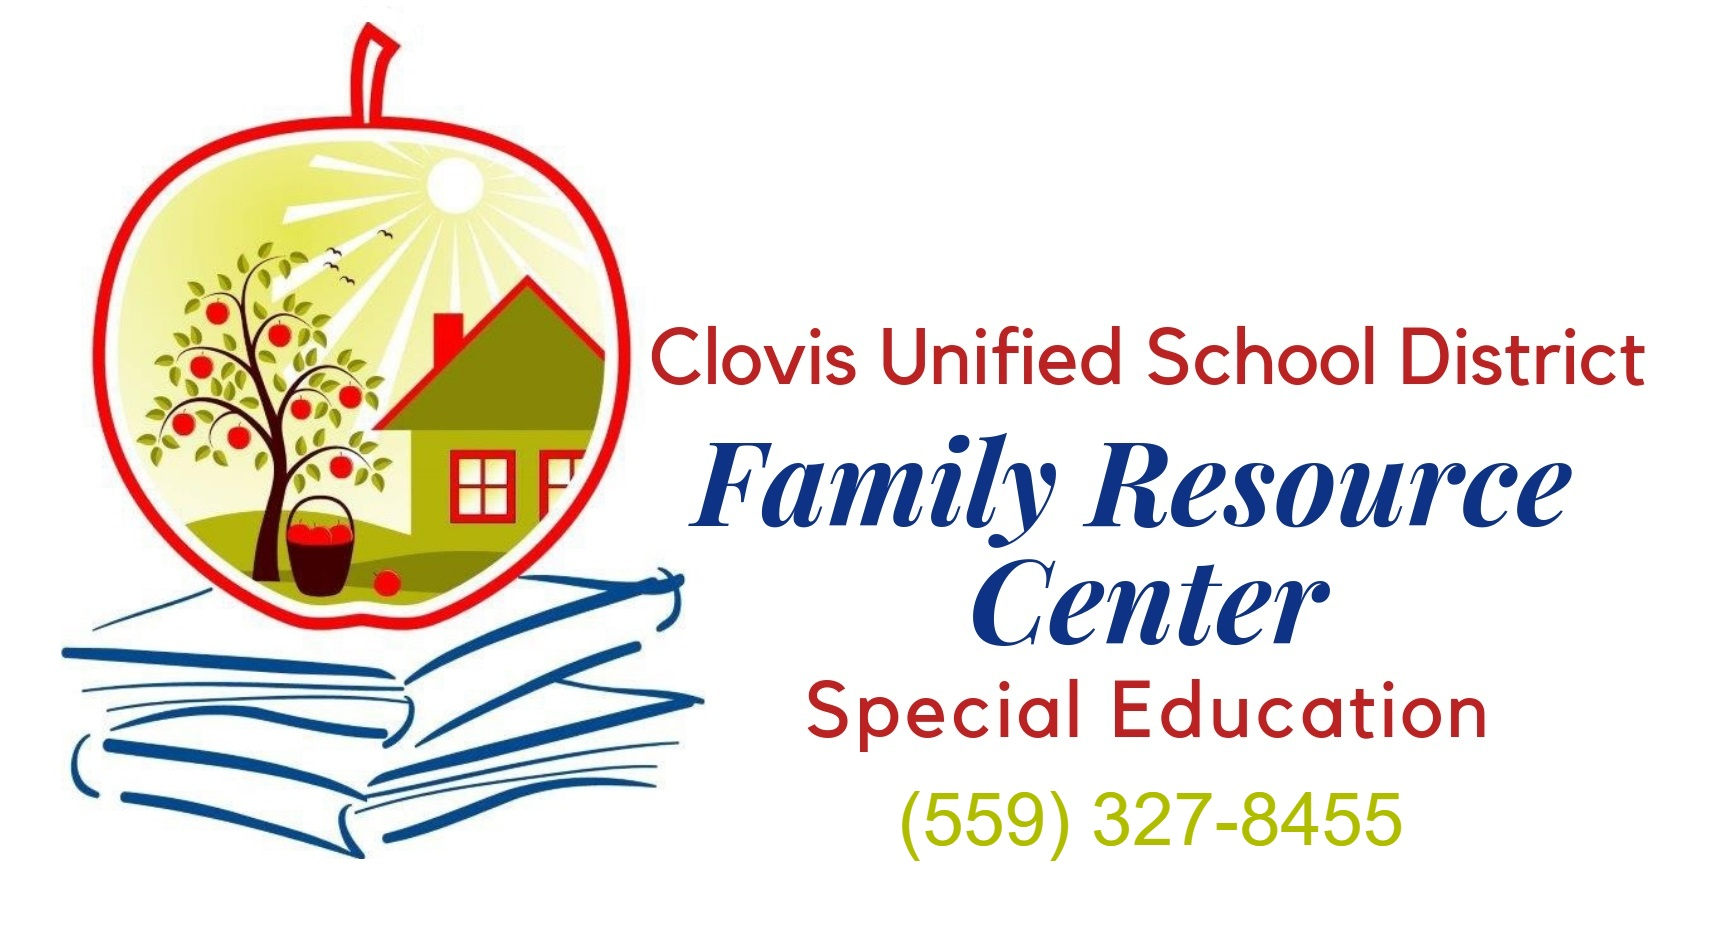 CUSD Family Resource Center logo. Red clip art apple with house and apple tree inside.